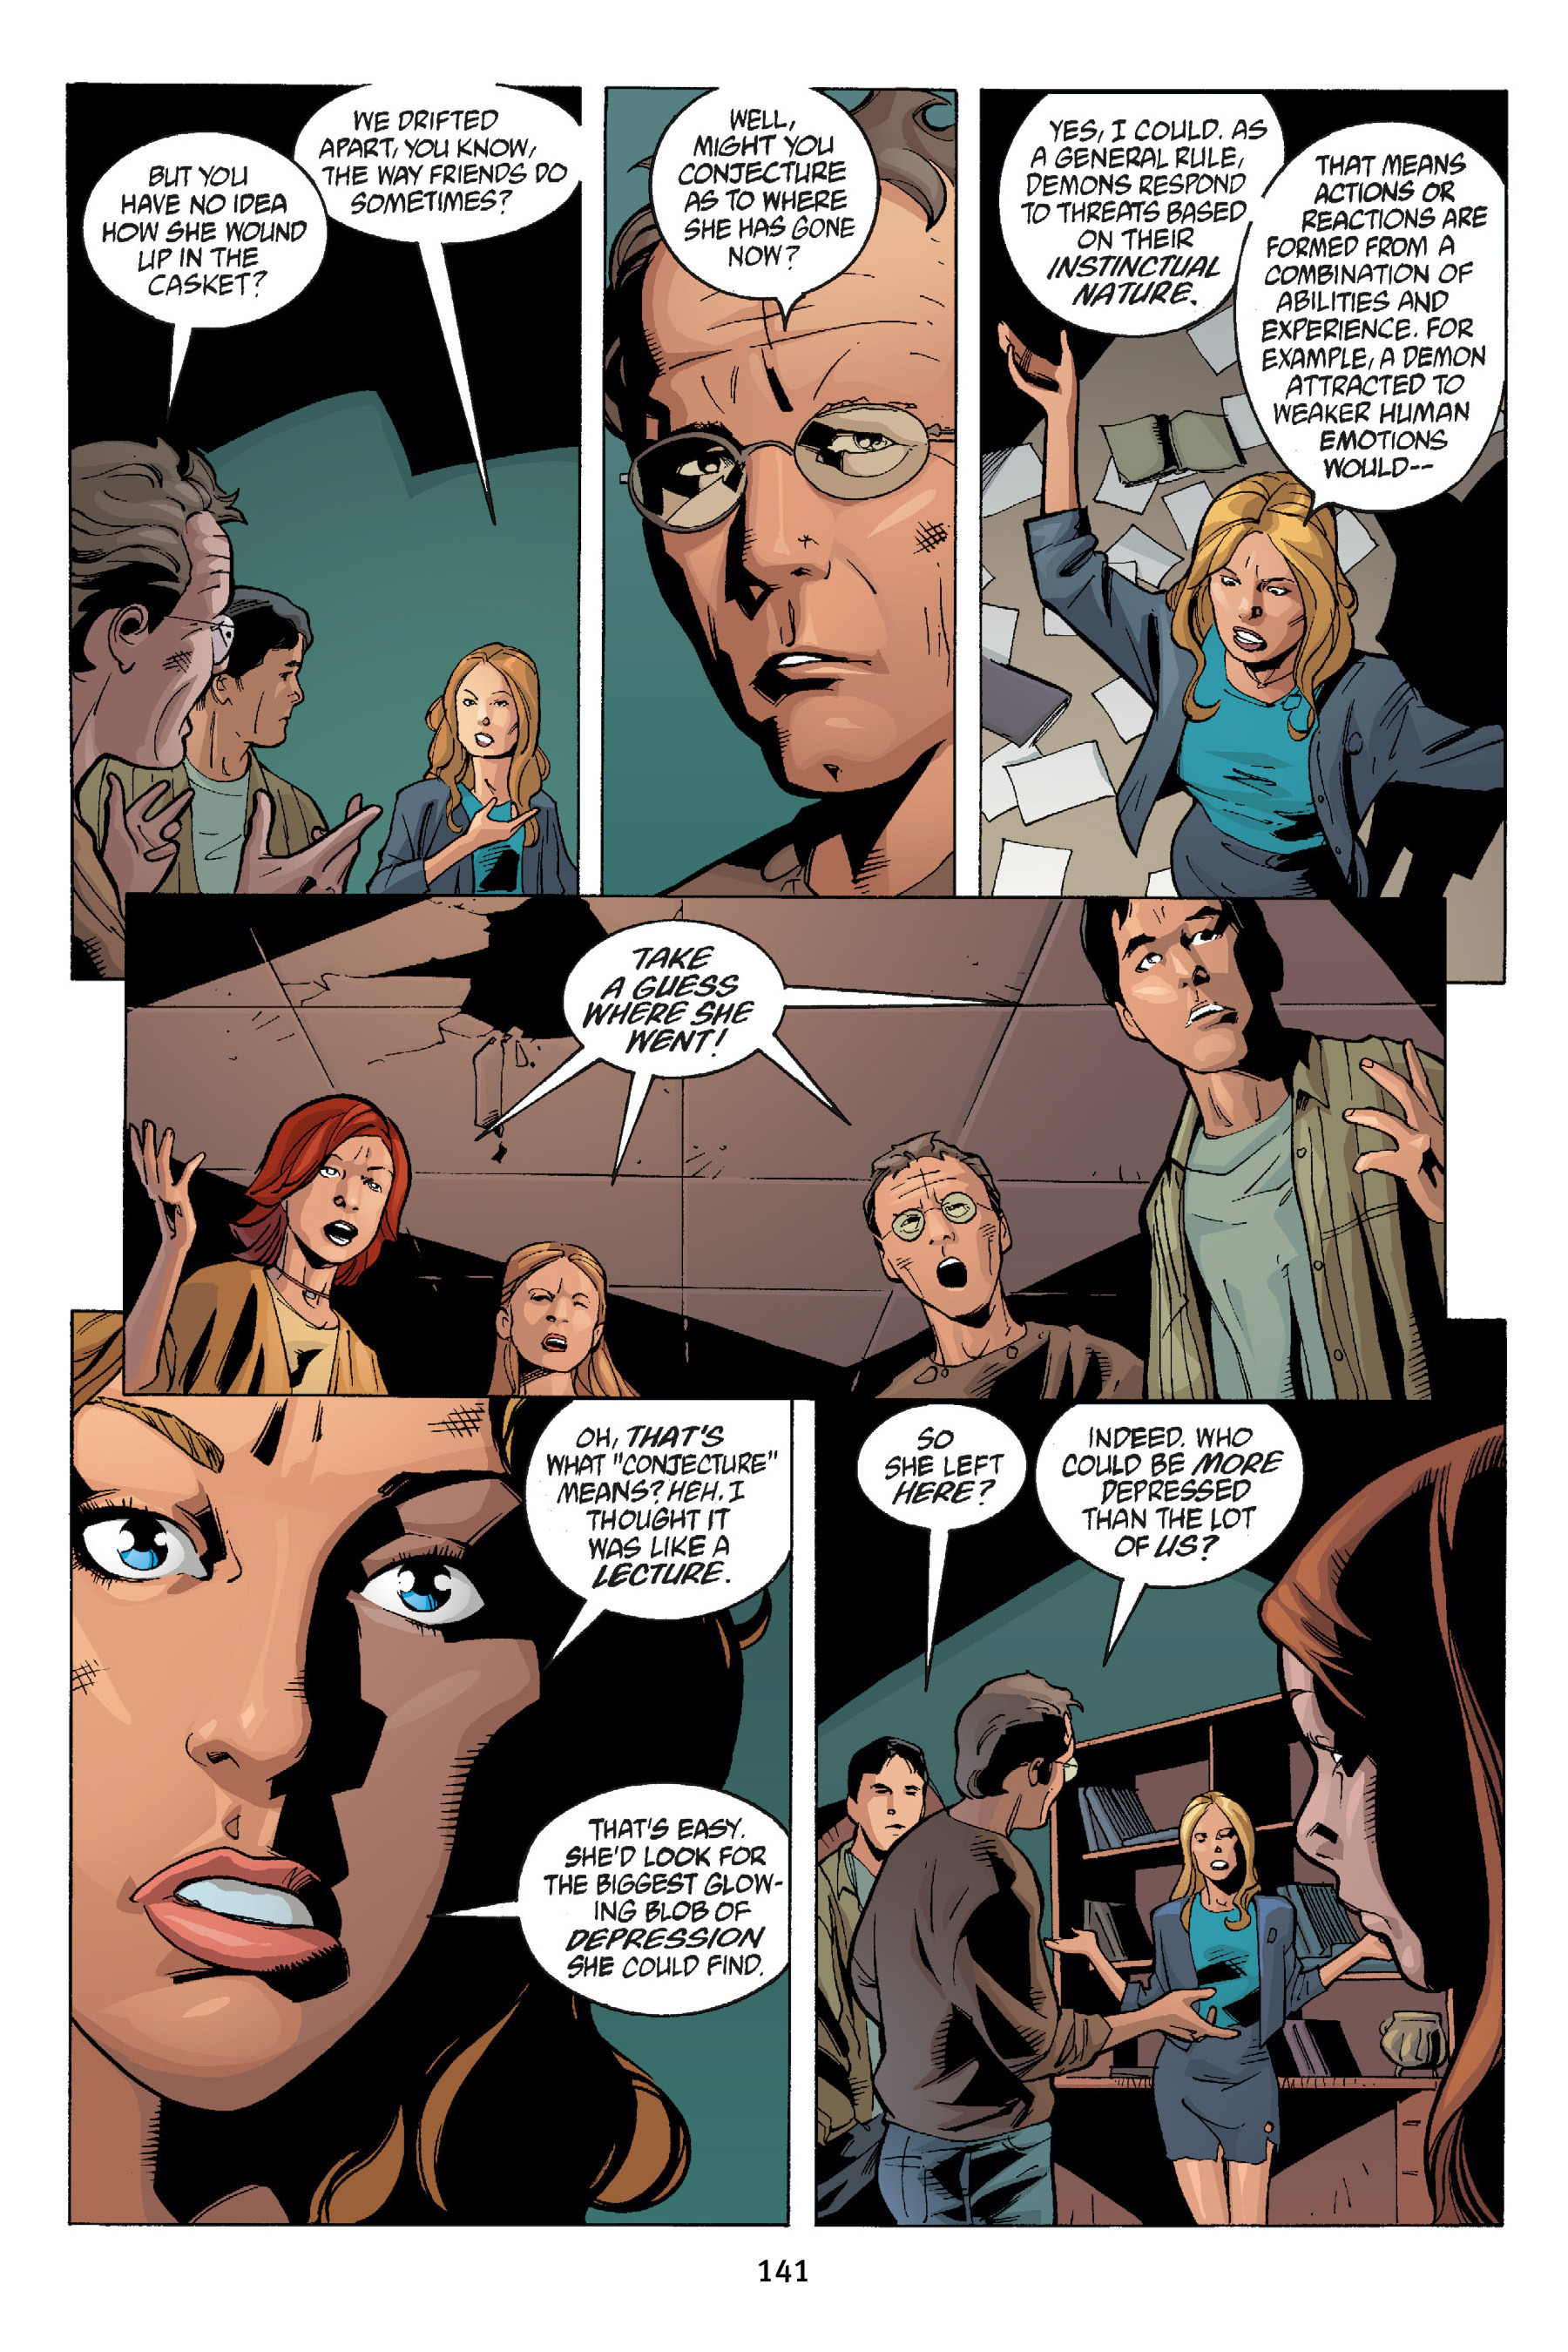 Read online Buffy the Vampire Slayer: Omnibus comic -  Issue # TPB 7 - 141